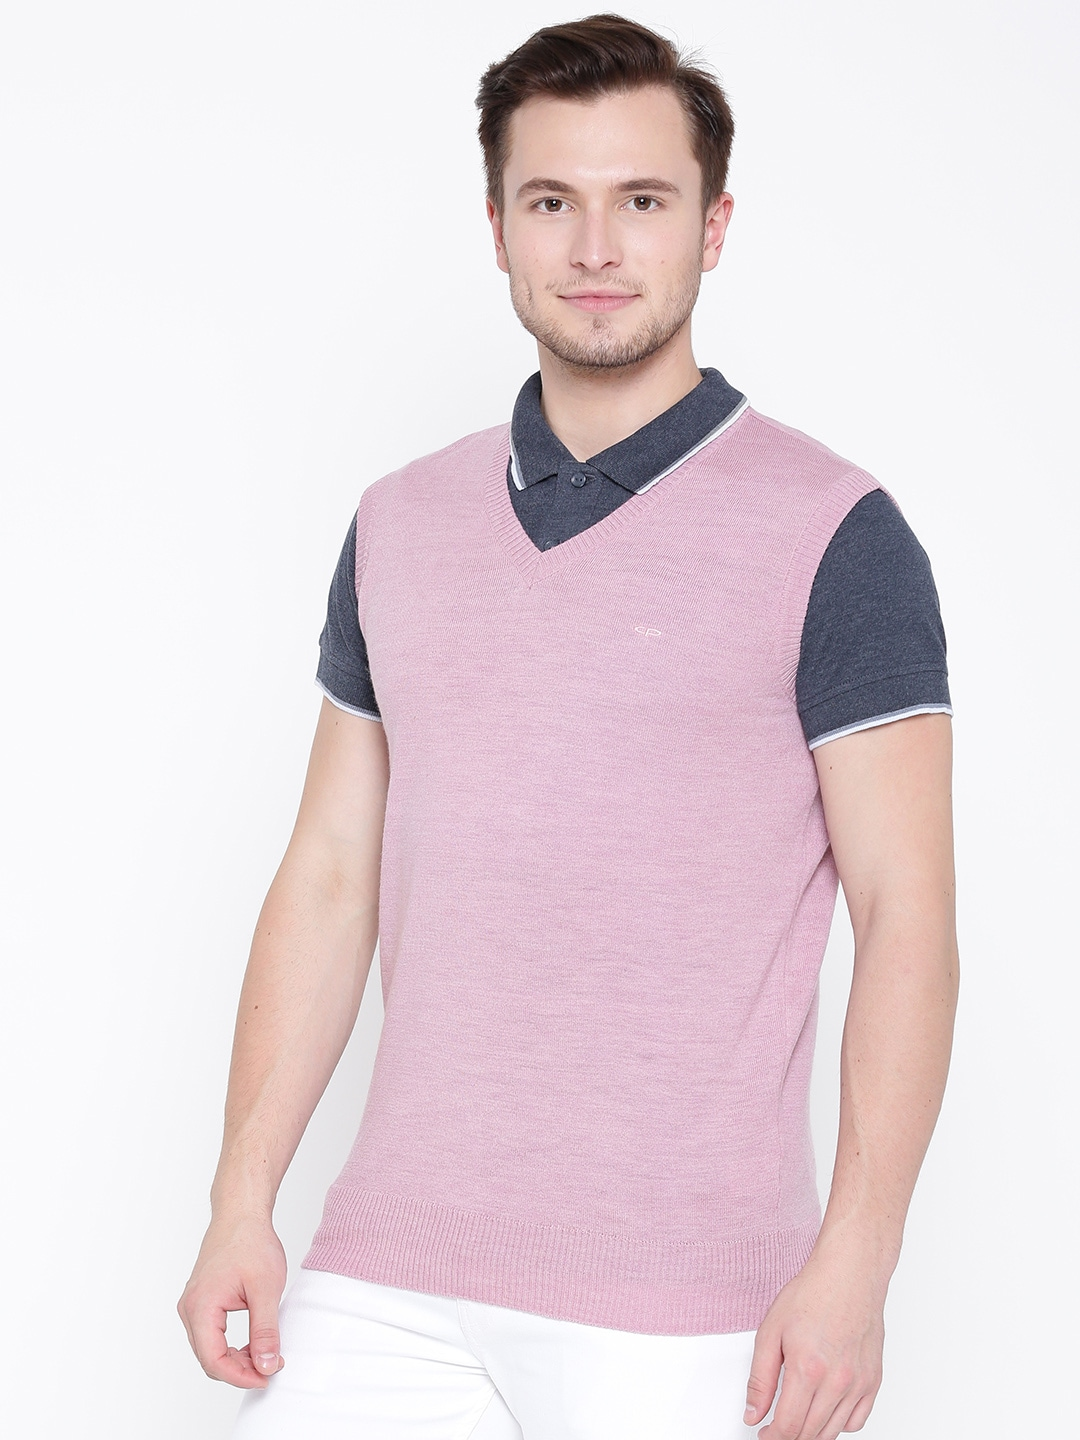 Men Sleeveless Sweaters - Buy Men Sleeveless Sweaters online in India